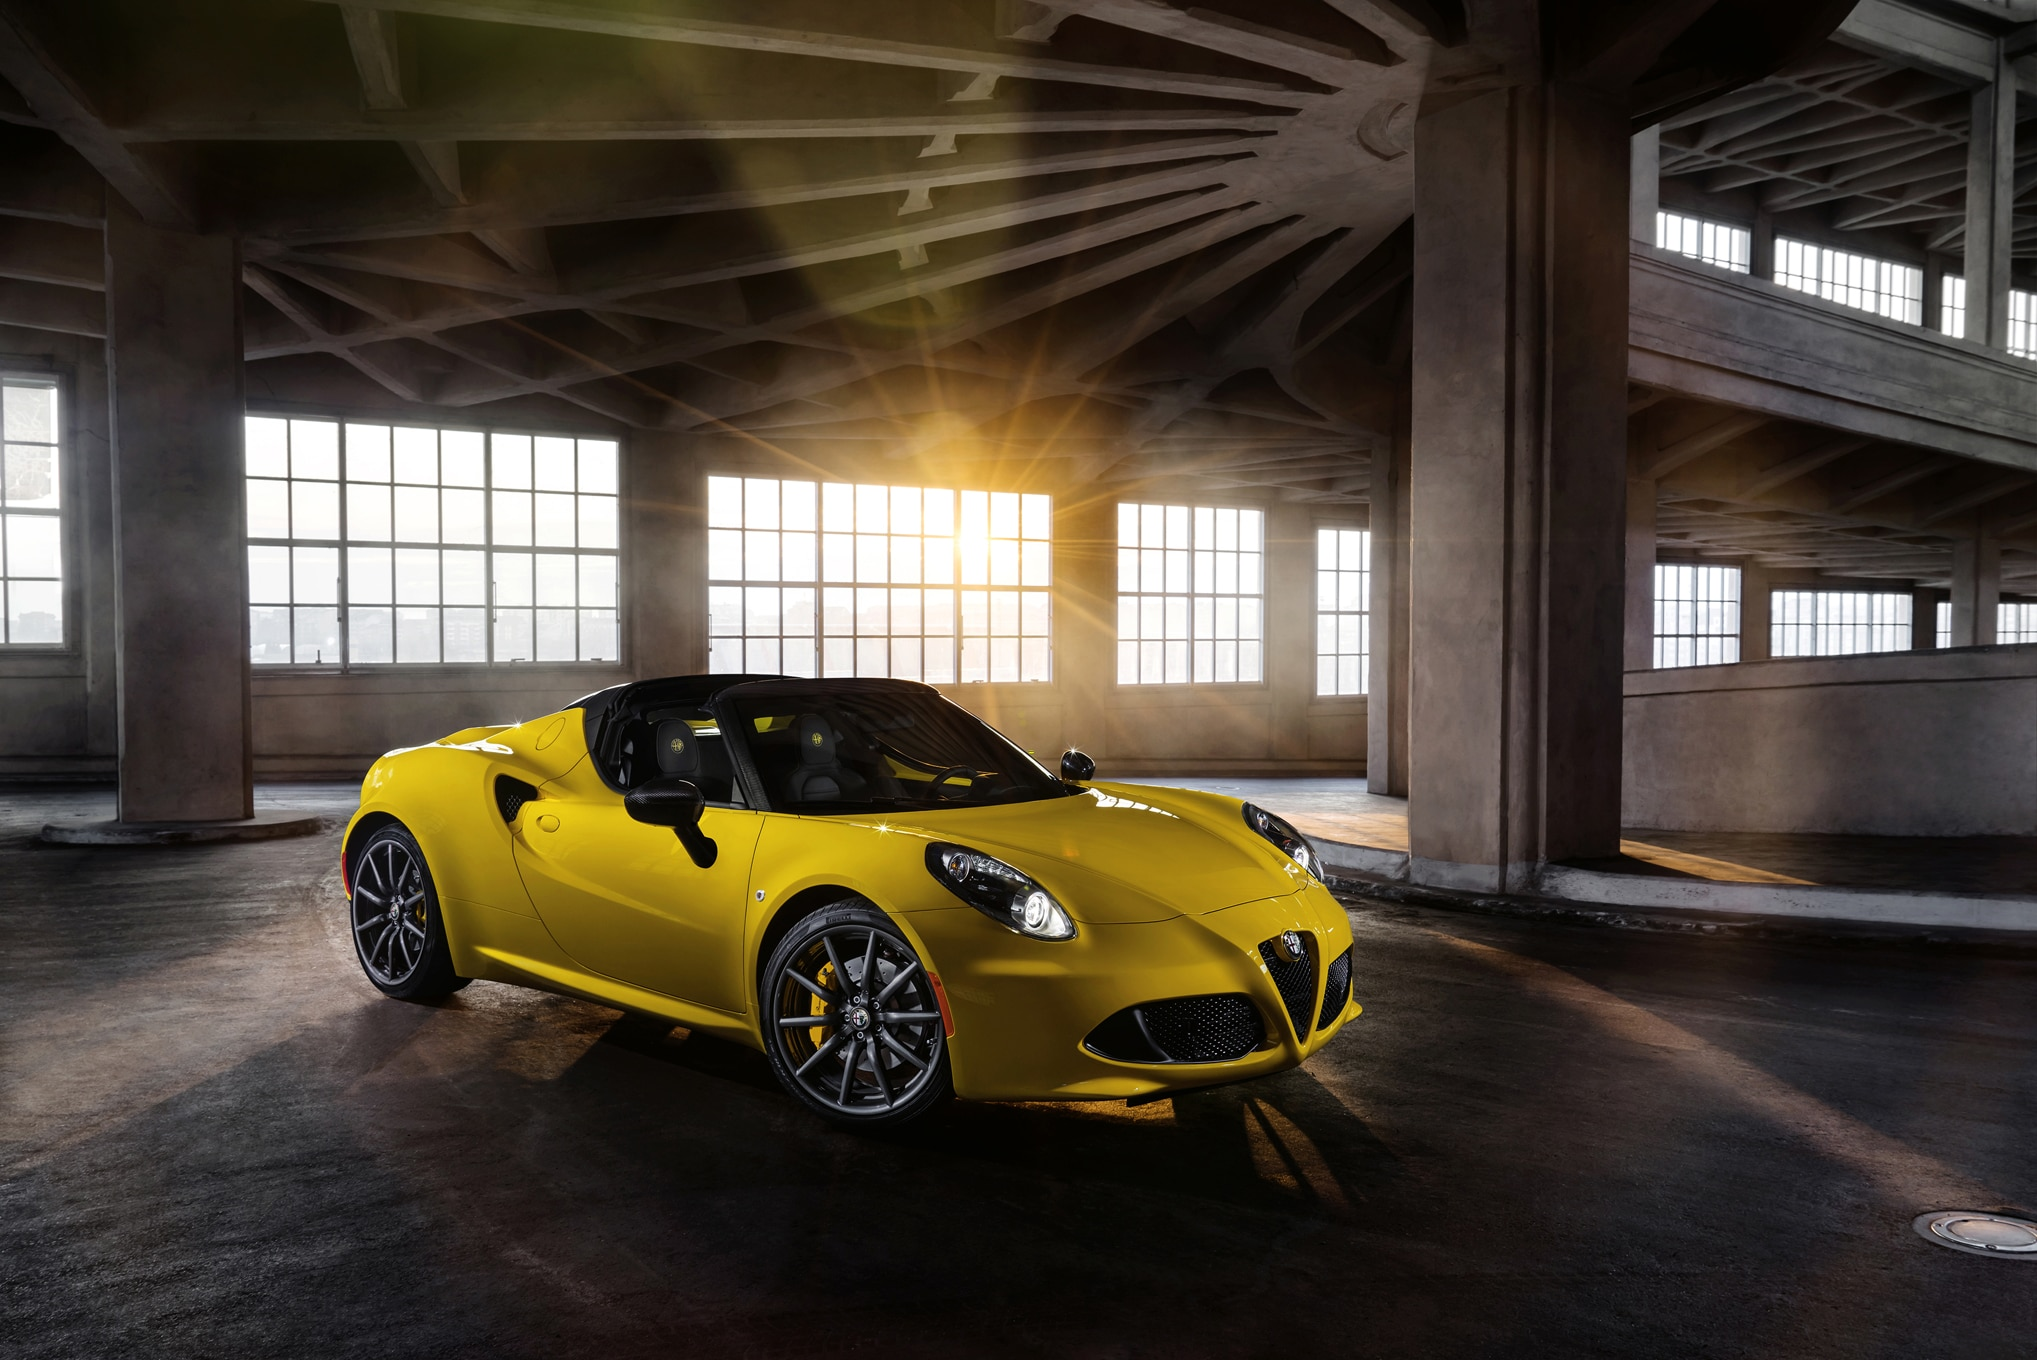 report: alfa romeo 4c may be discontinued in the near future